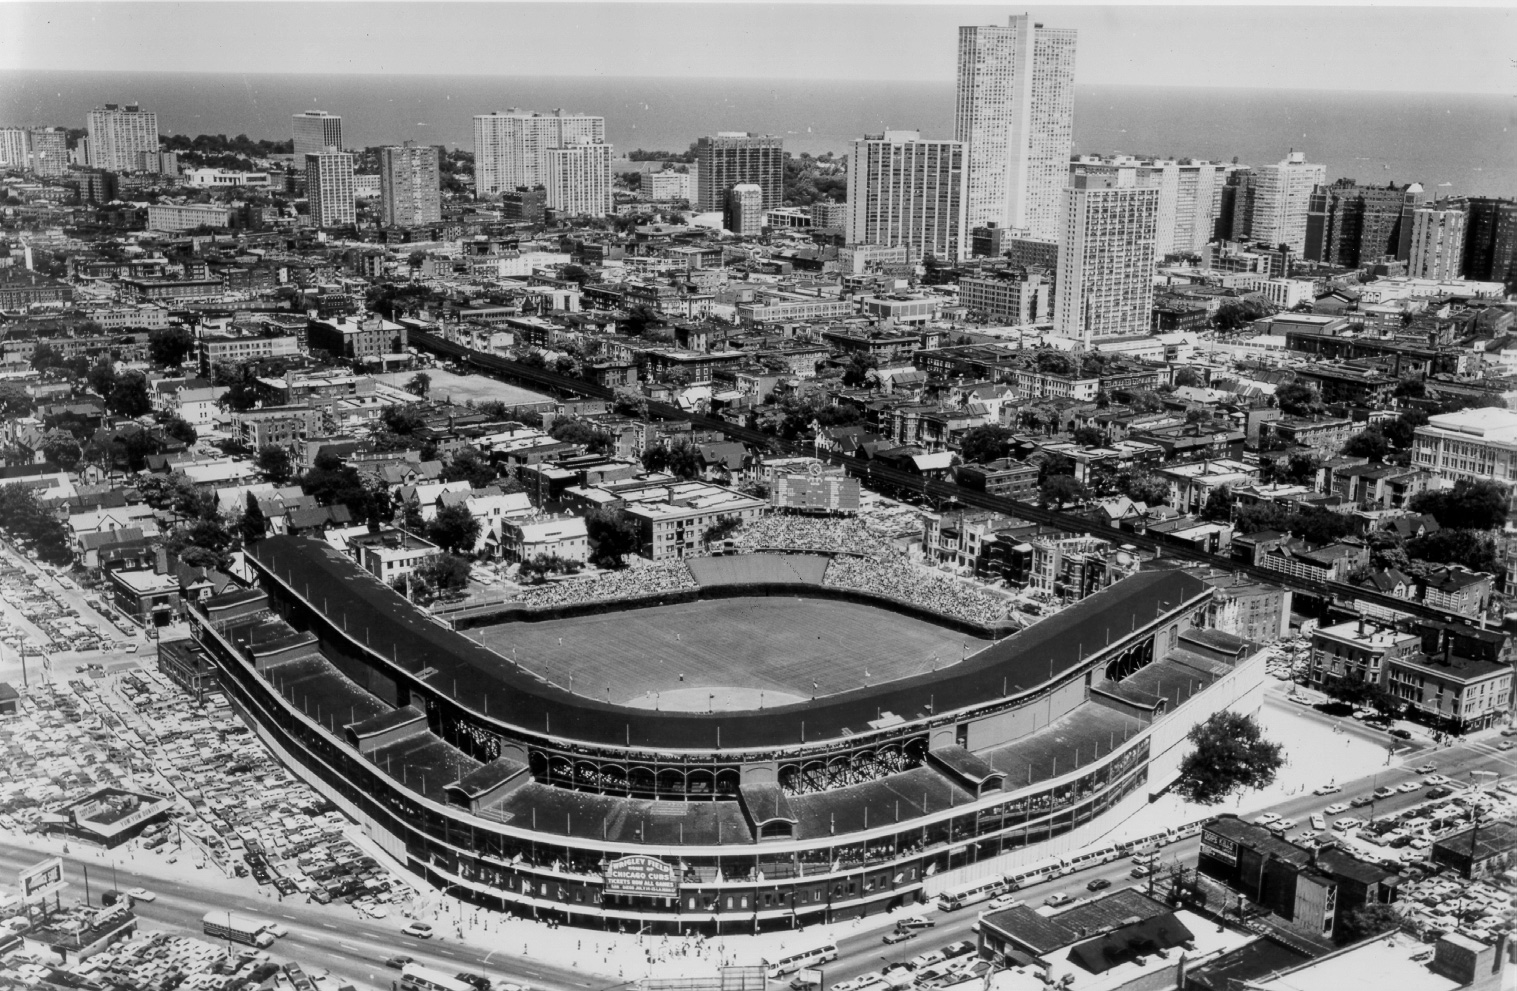 Wrigley field chicago cubs ballpark ballparks of baseball malvernweather Choice Image